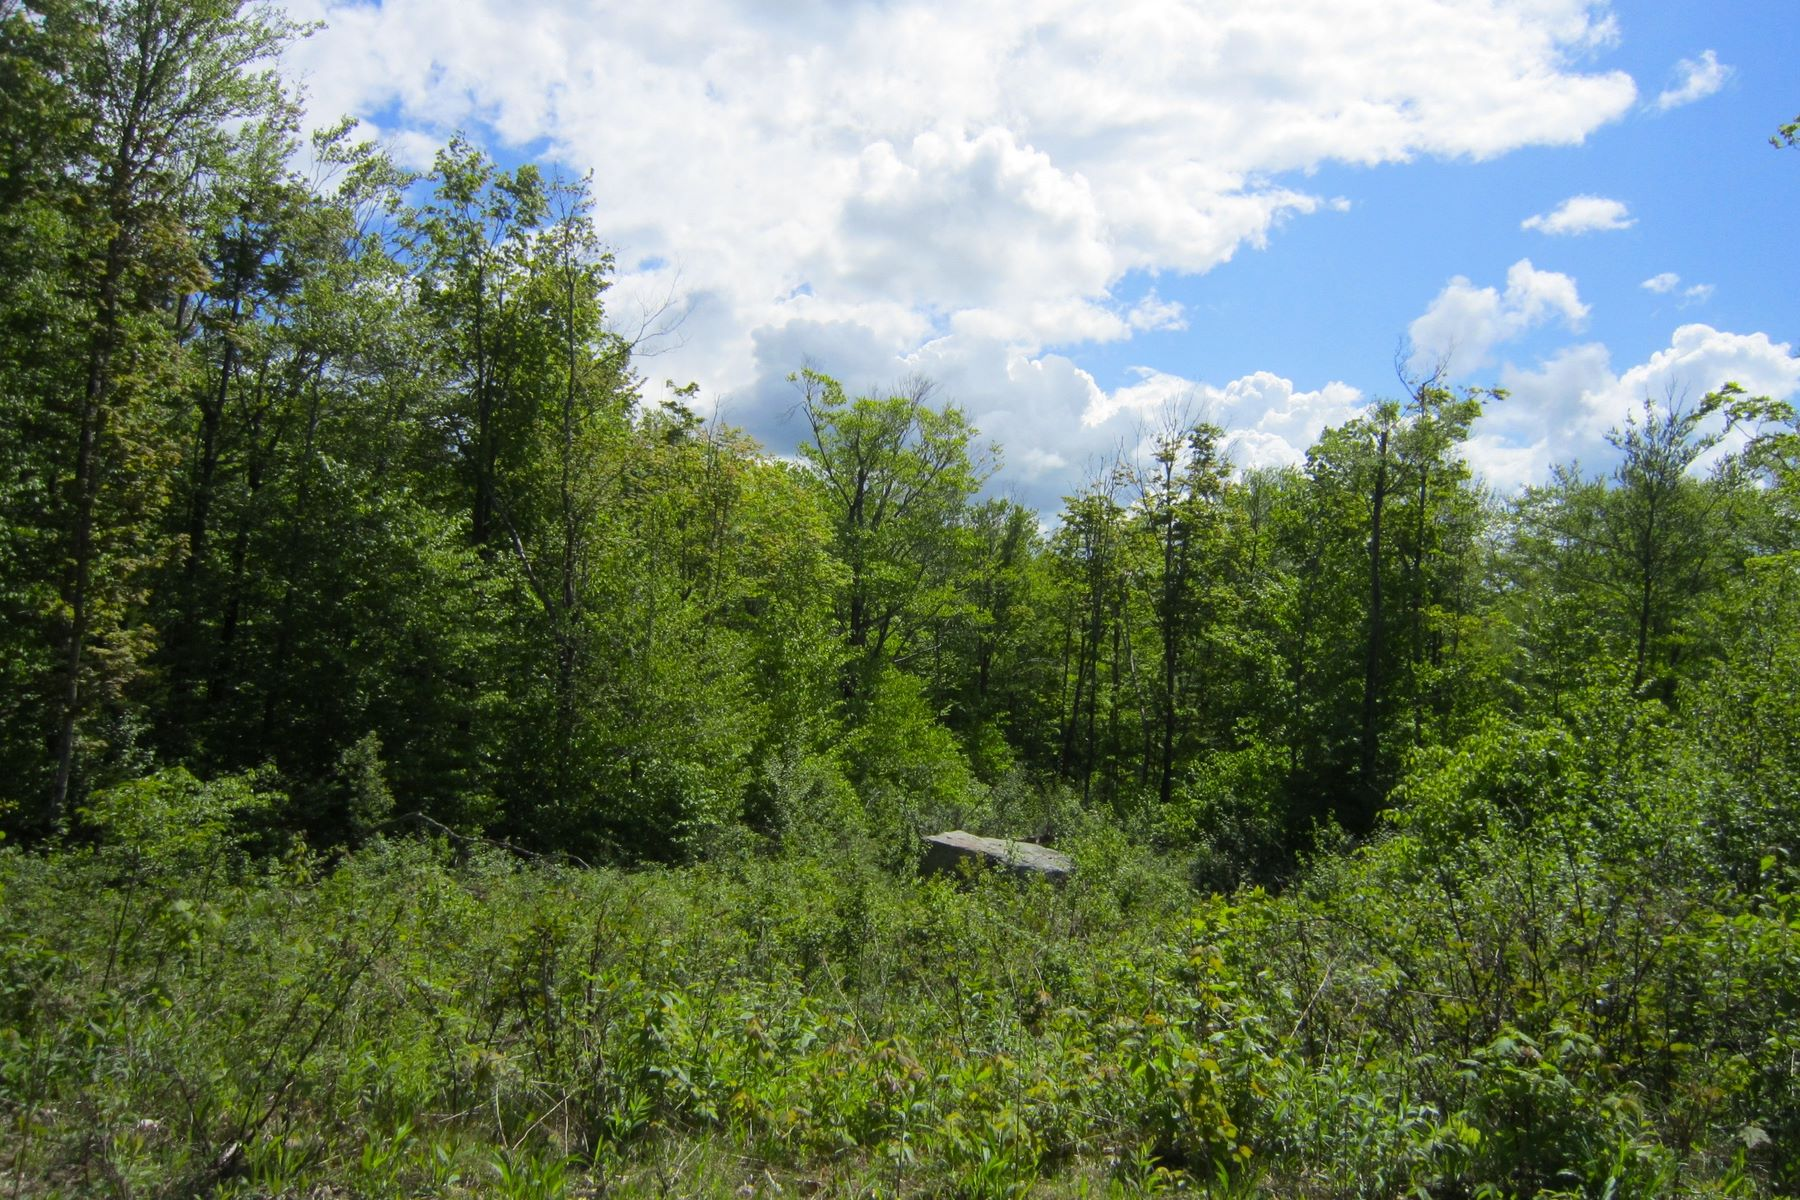 Land for Sale at Lot 5 Candeleros Court Ludlow, Vermont 05149 United States